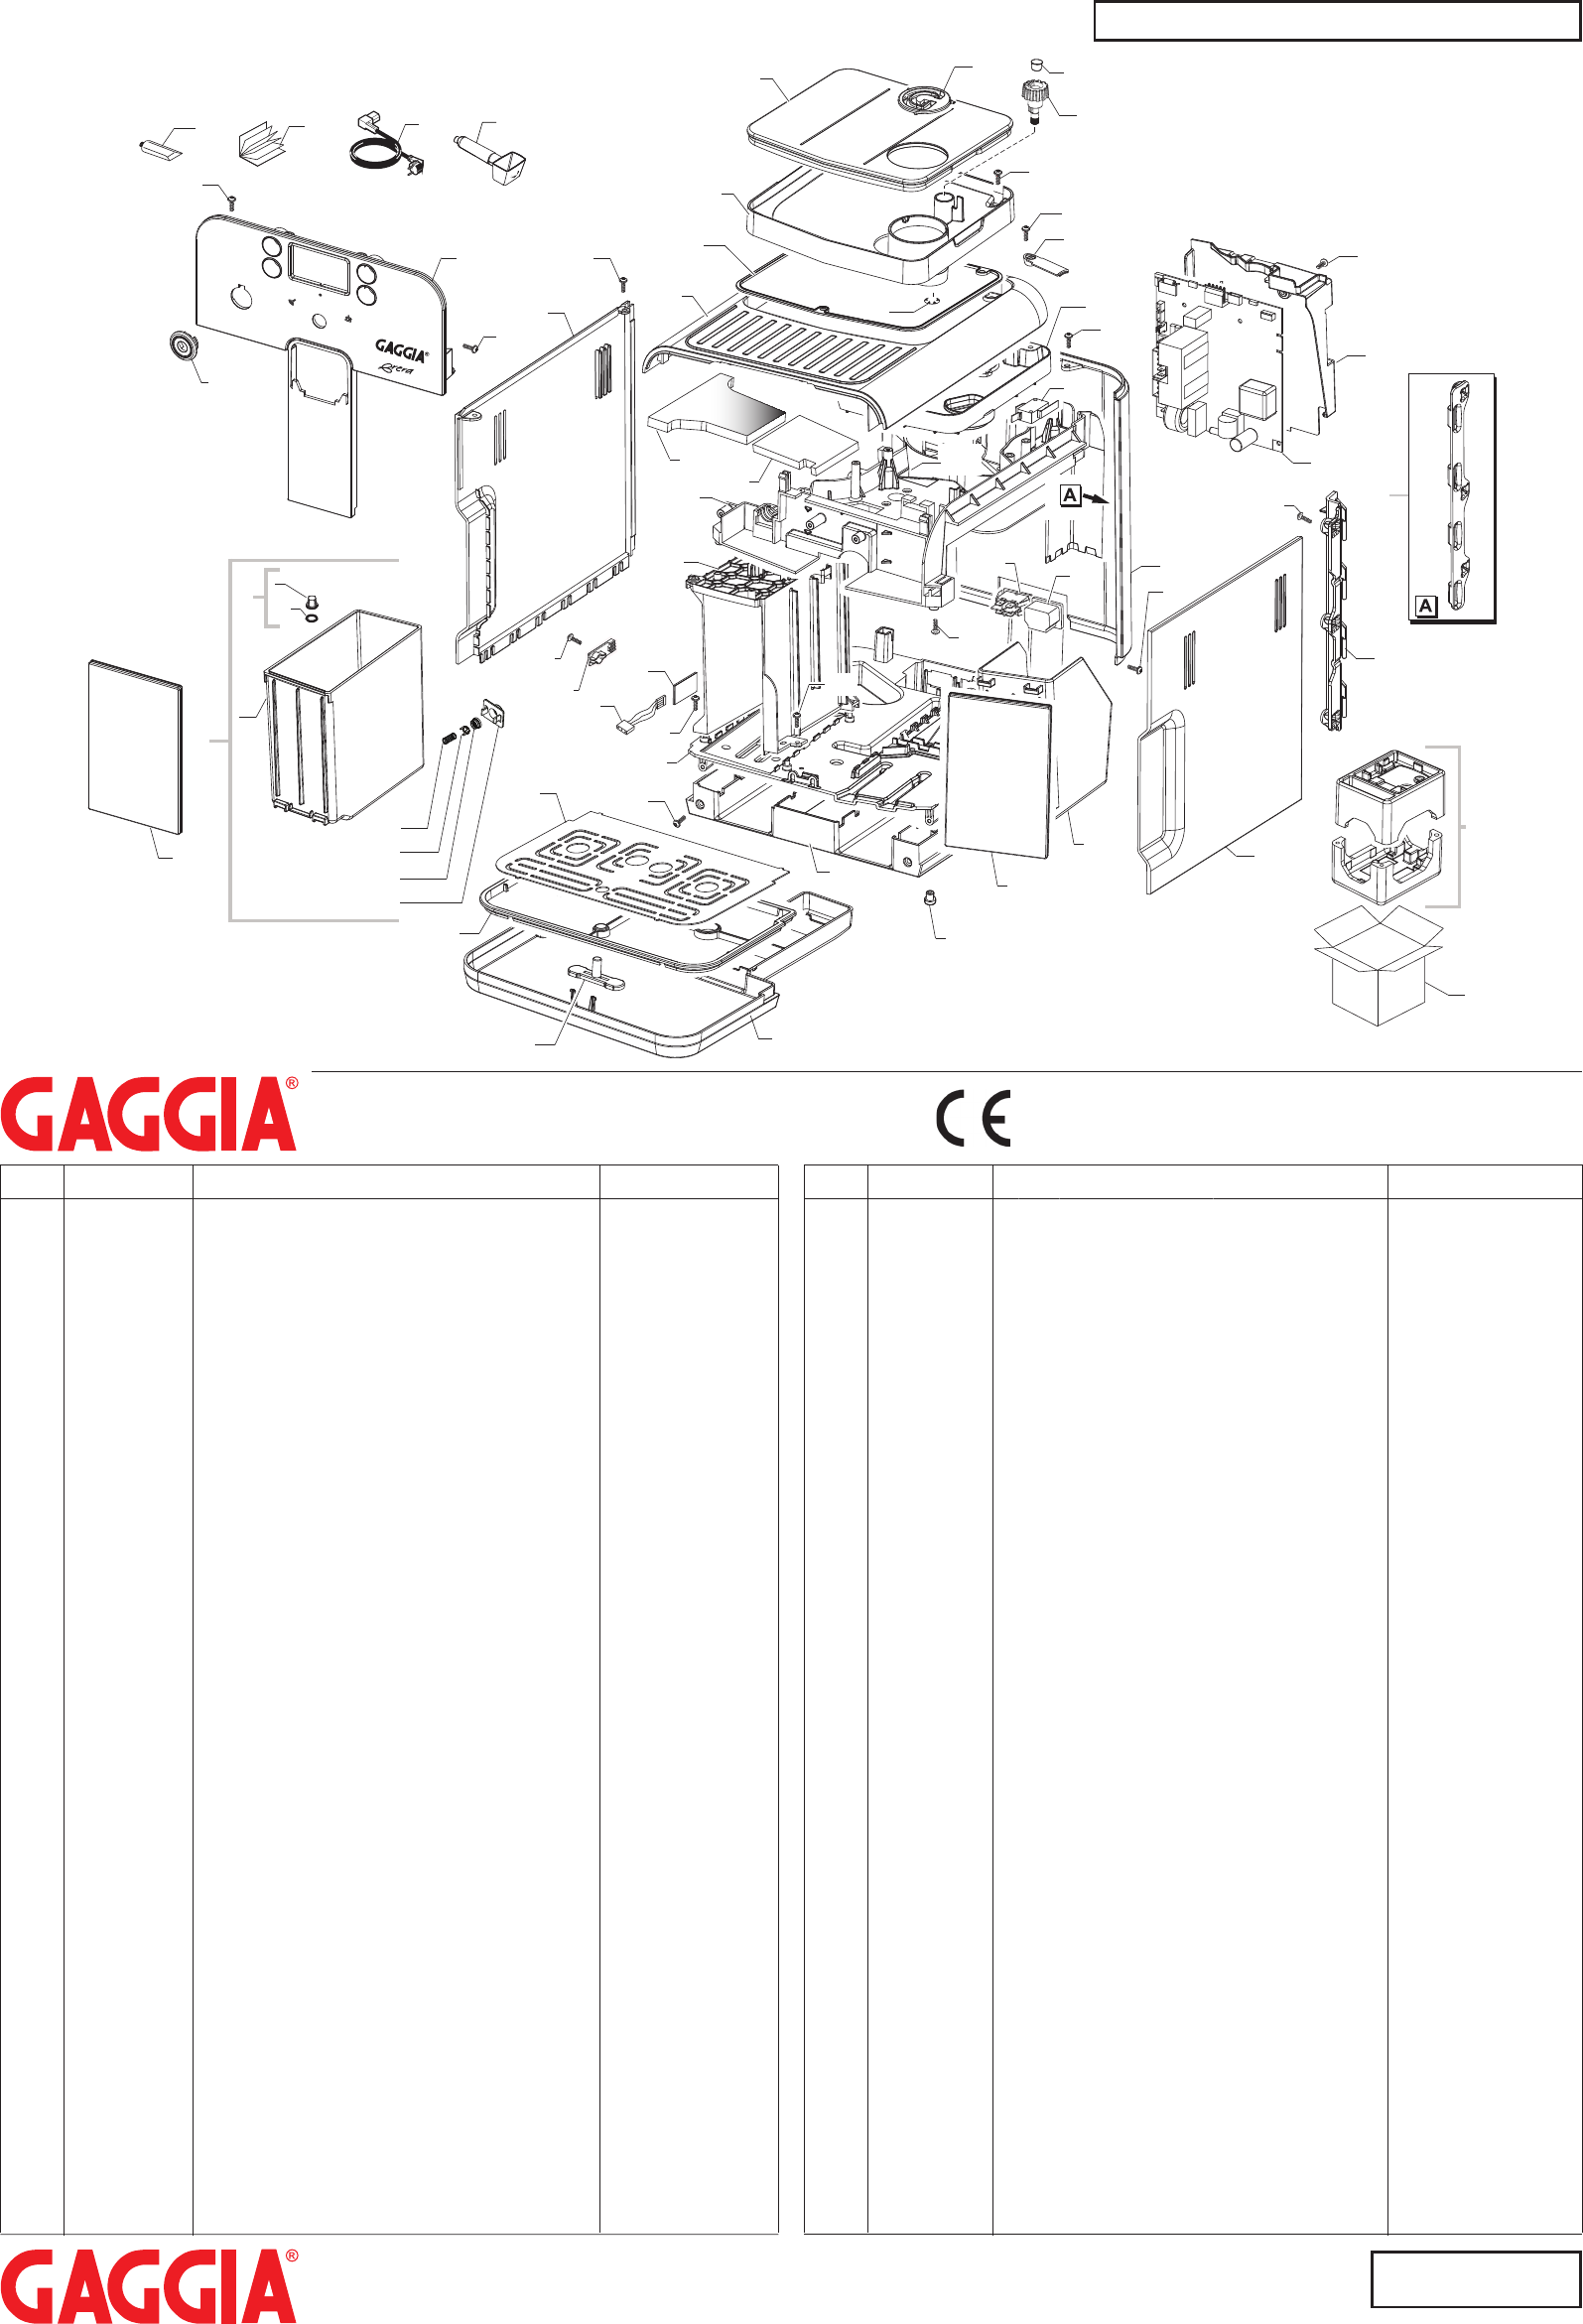 Gaggia Brera Parts Diagram User Manual